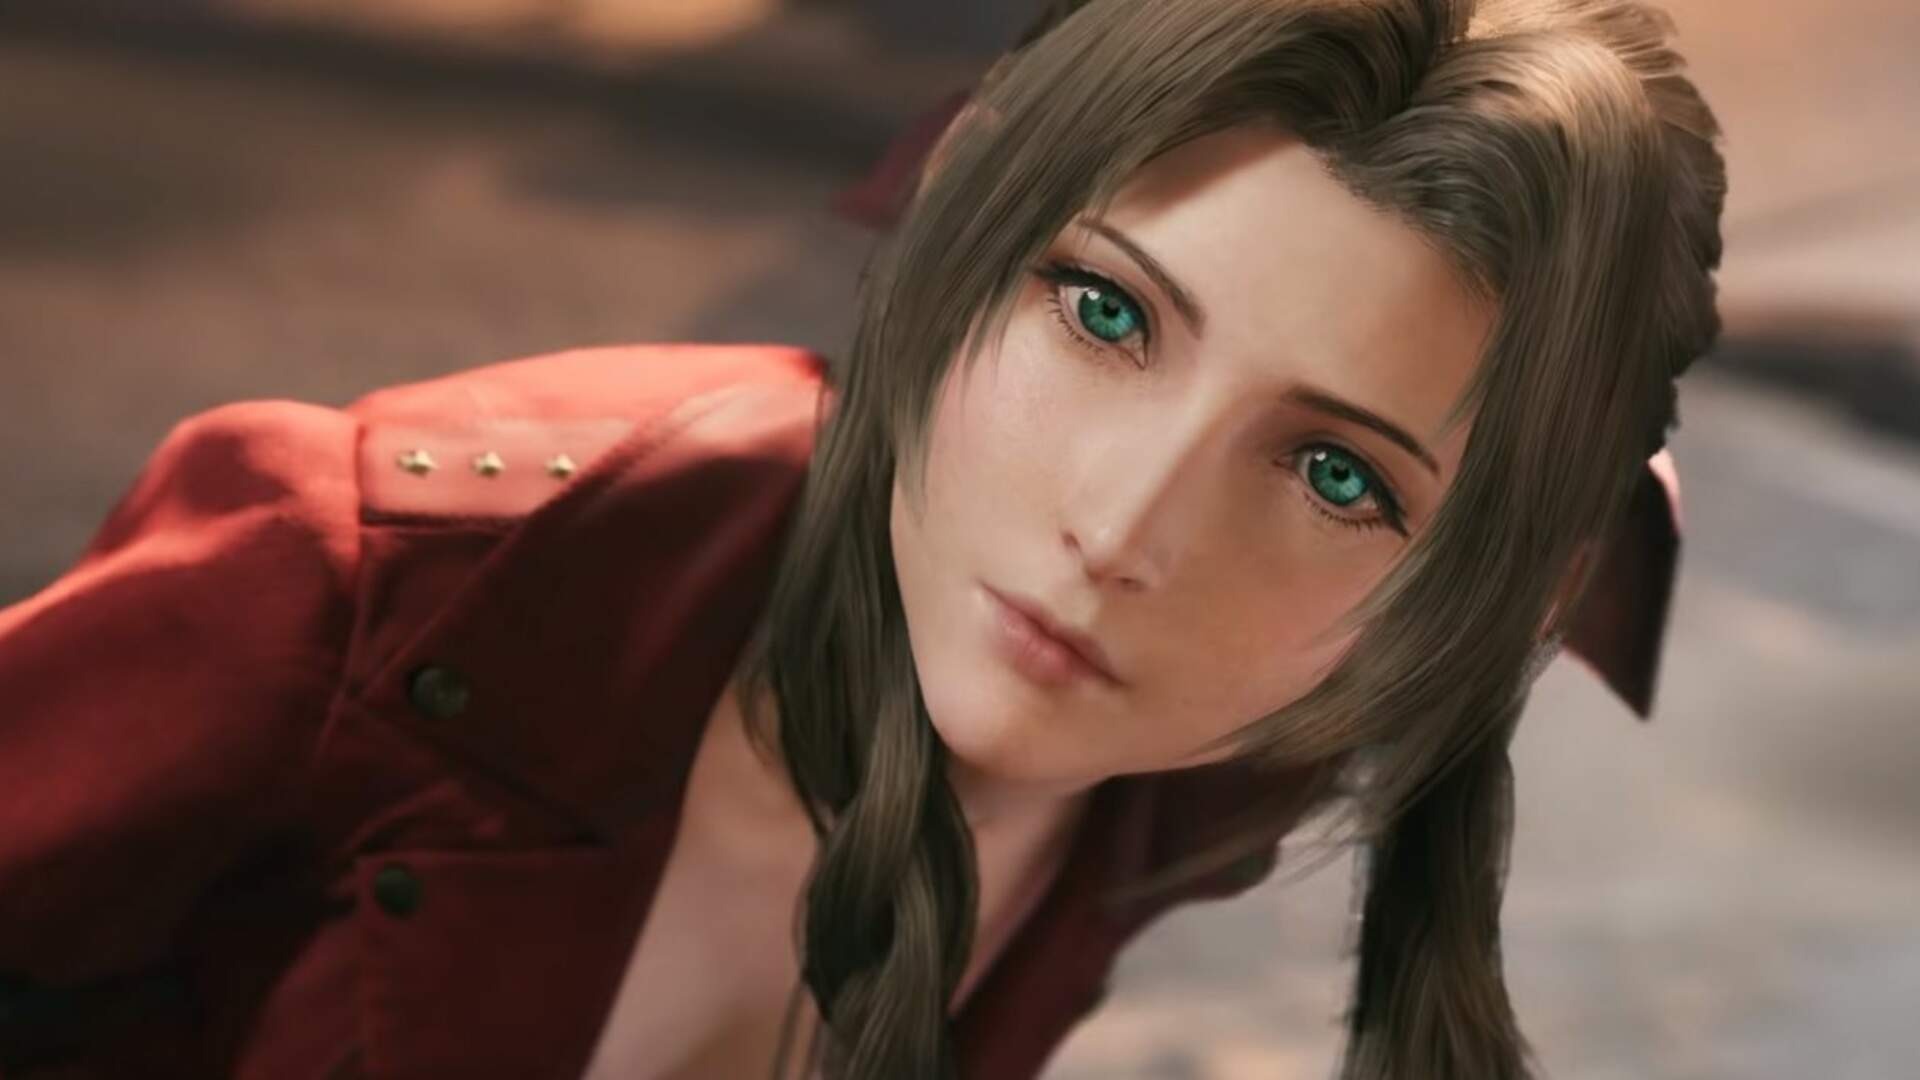 Final Fantasy 7 Remake Demo Appears on the PSN Store